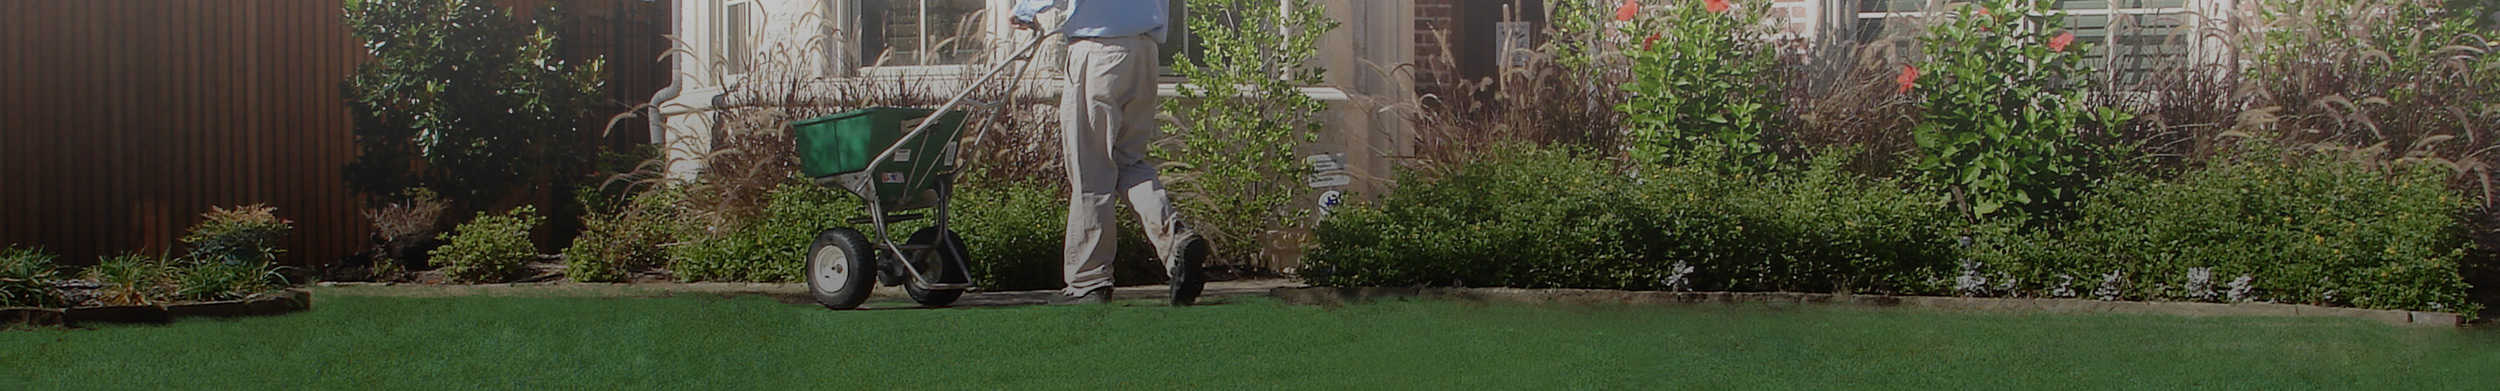 about us: Weedex Lawn Care